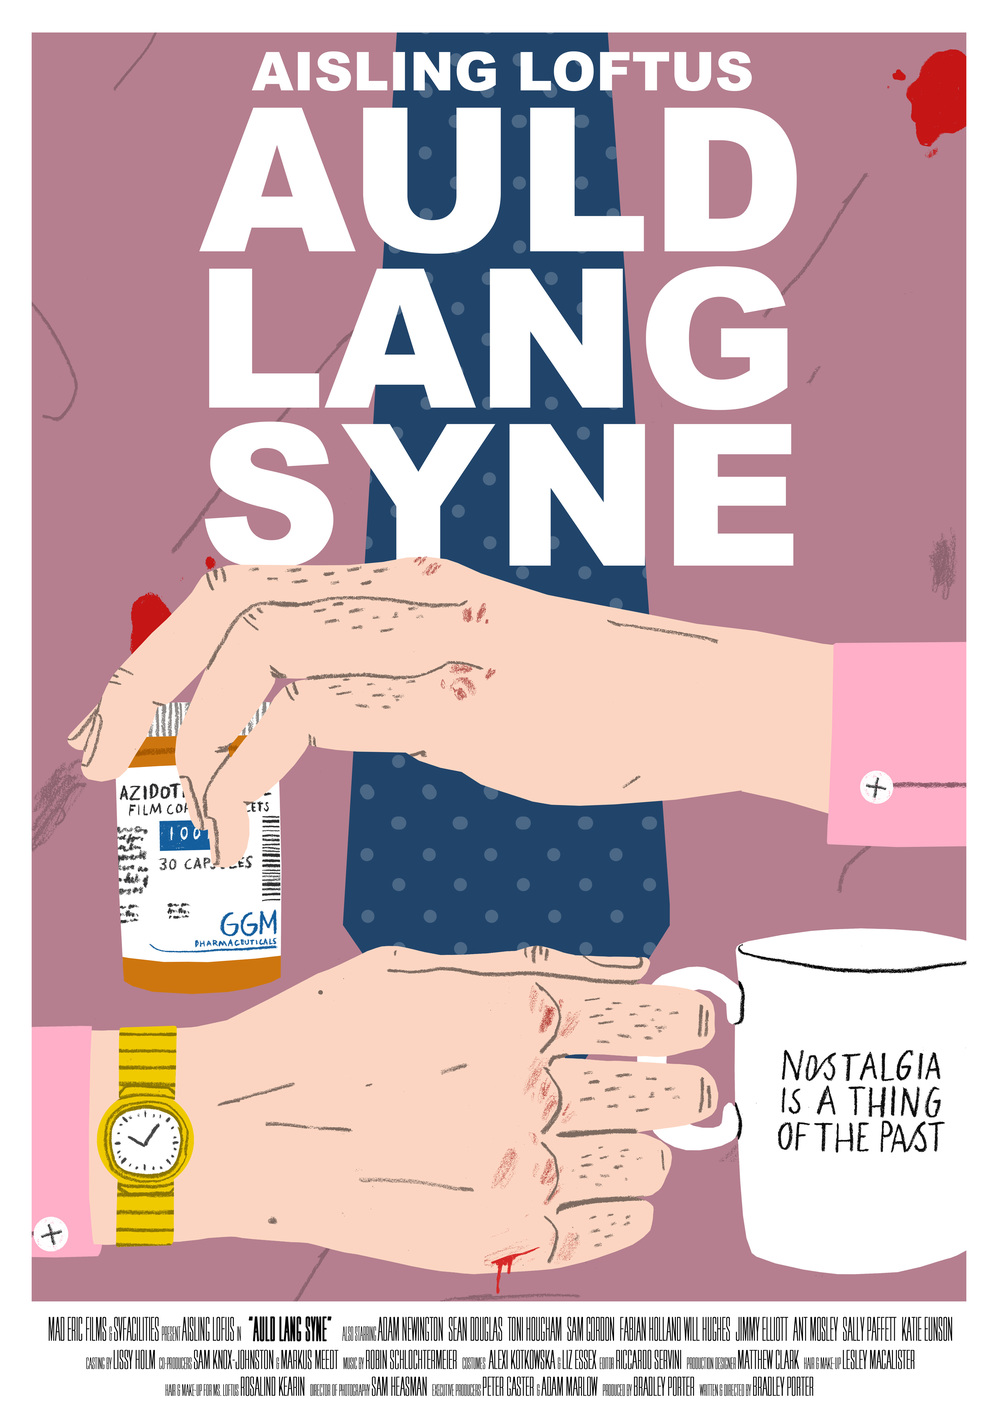 Poster design winners - Auld Lang Syne His